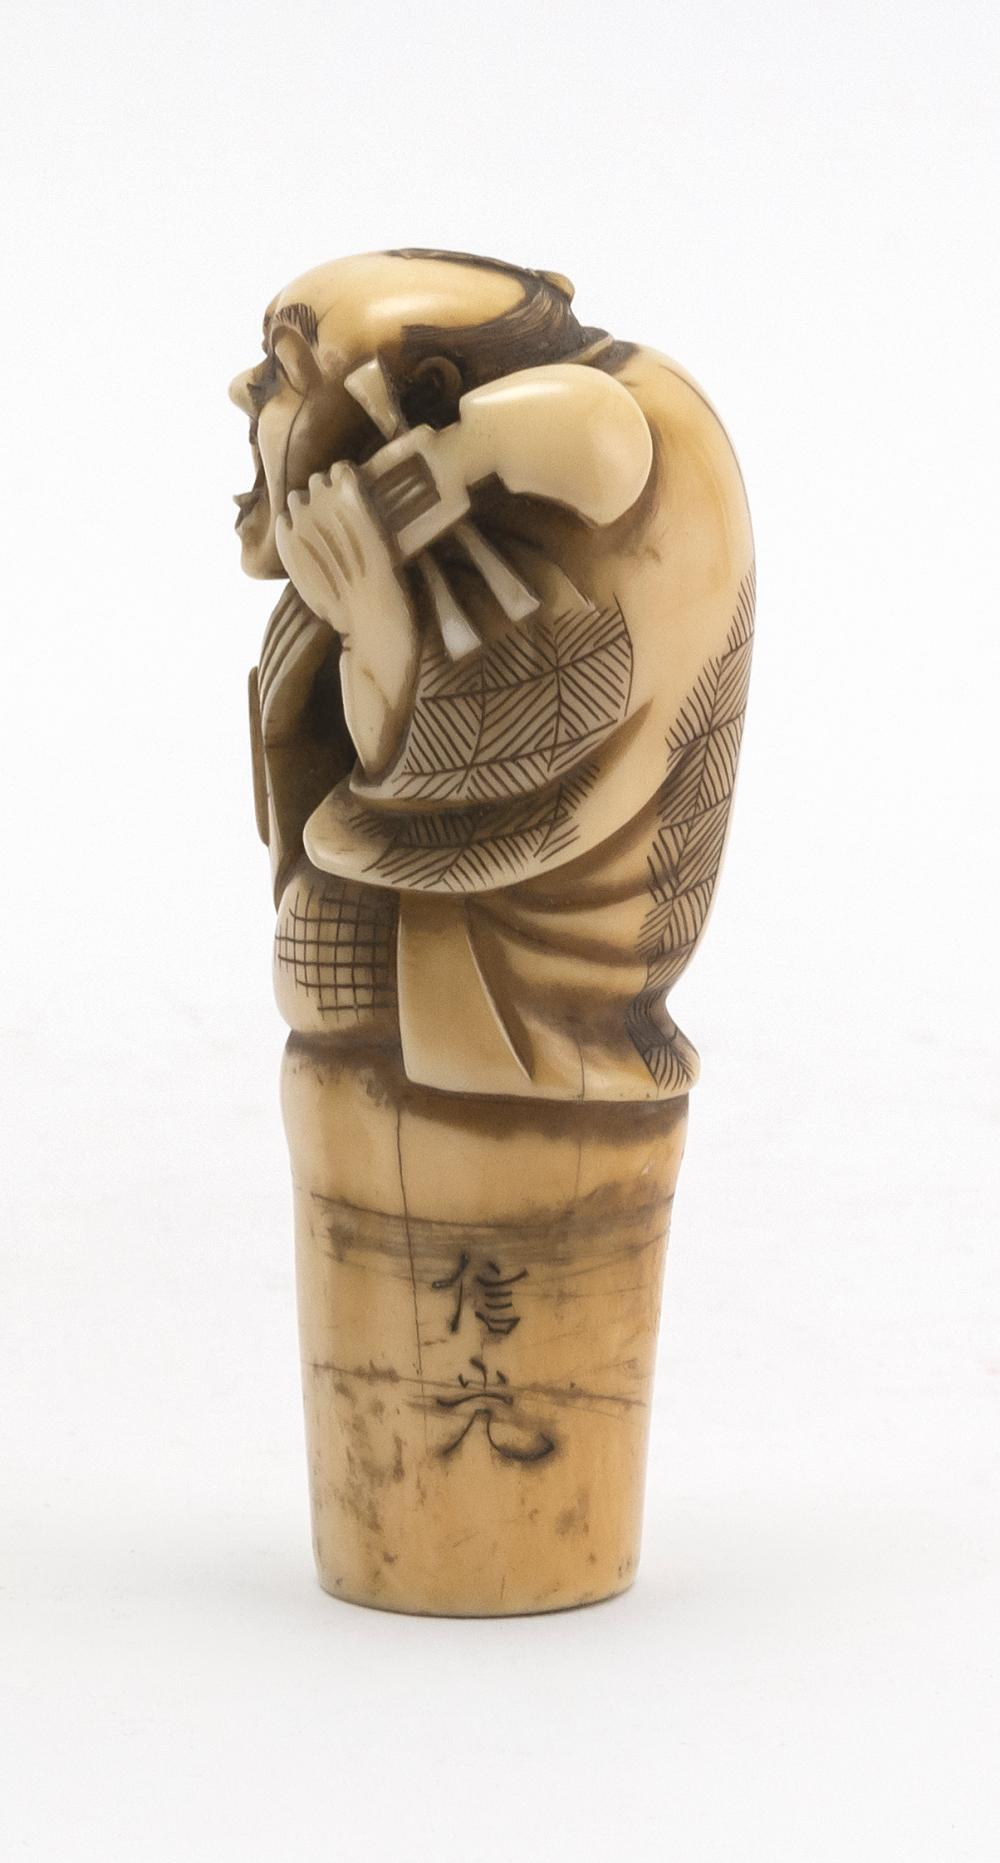 JAPANESE CARVED IVORY CANE HANDLE In the form of a musician playing a biwa. Signed. Length 3